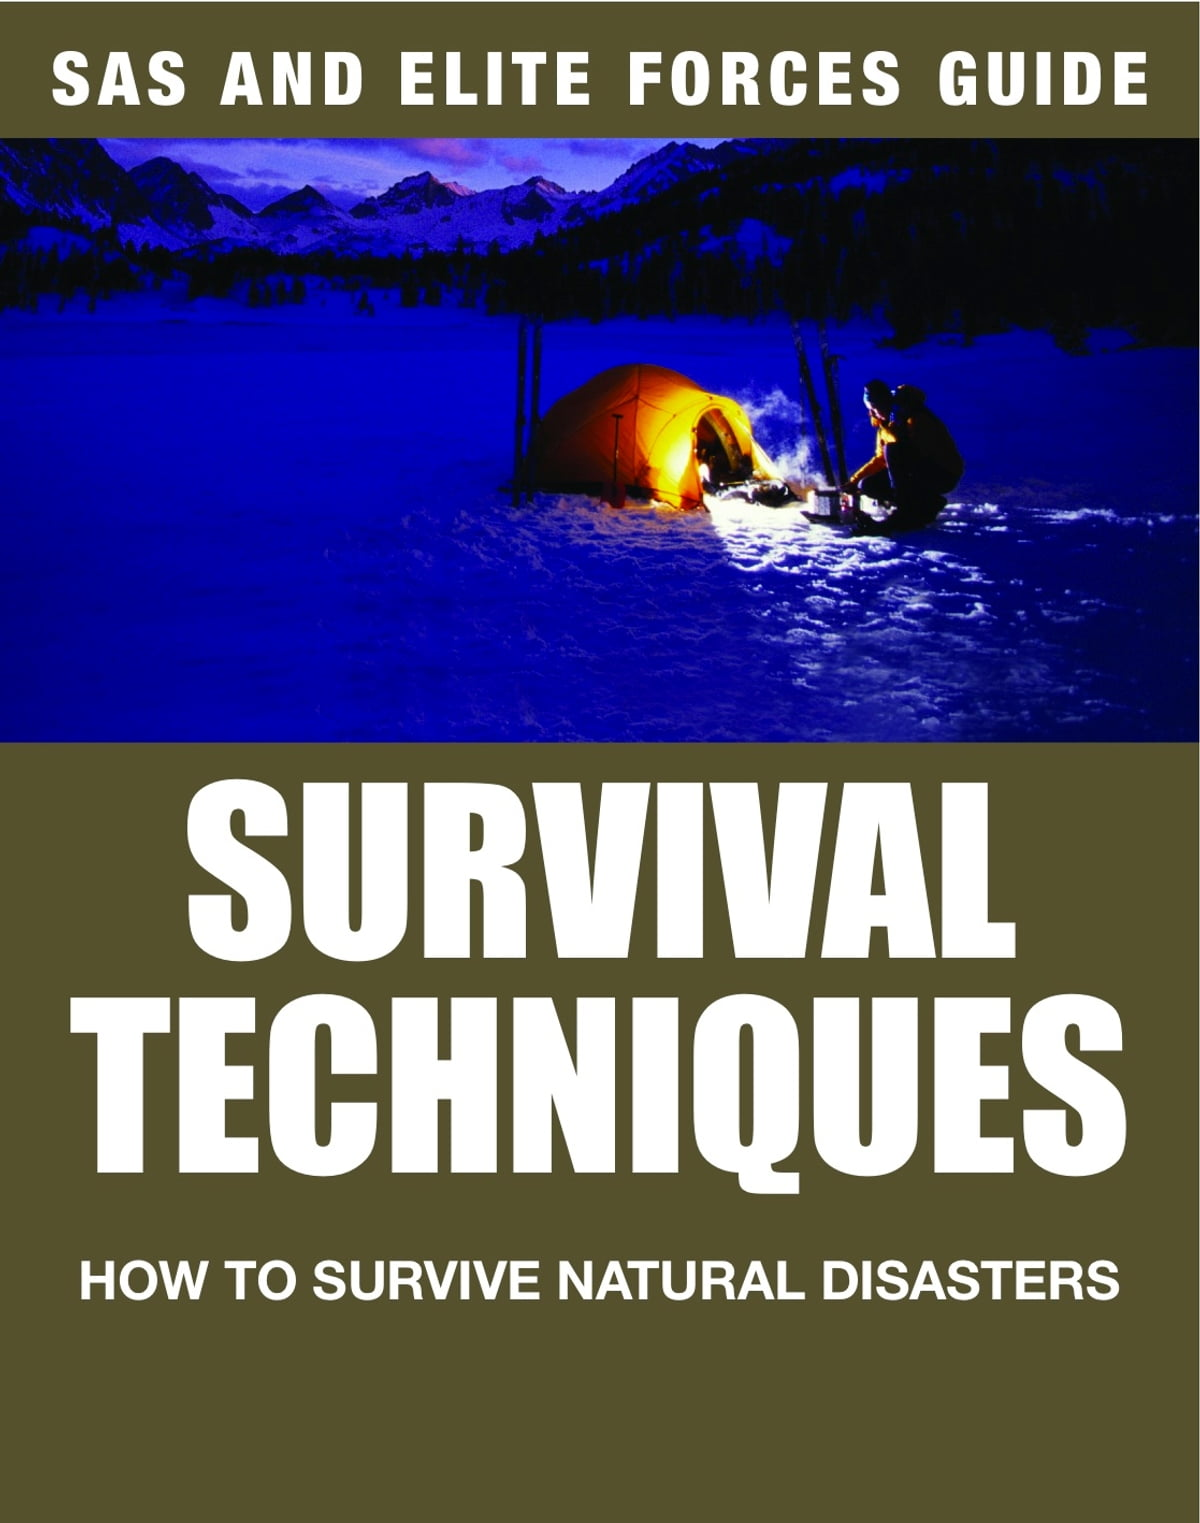 SAS and Elite Forces Guide: Survival Techniques eBook by Alexander Stilwell  - 9781908696052 | Rakuten Kobo